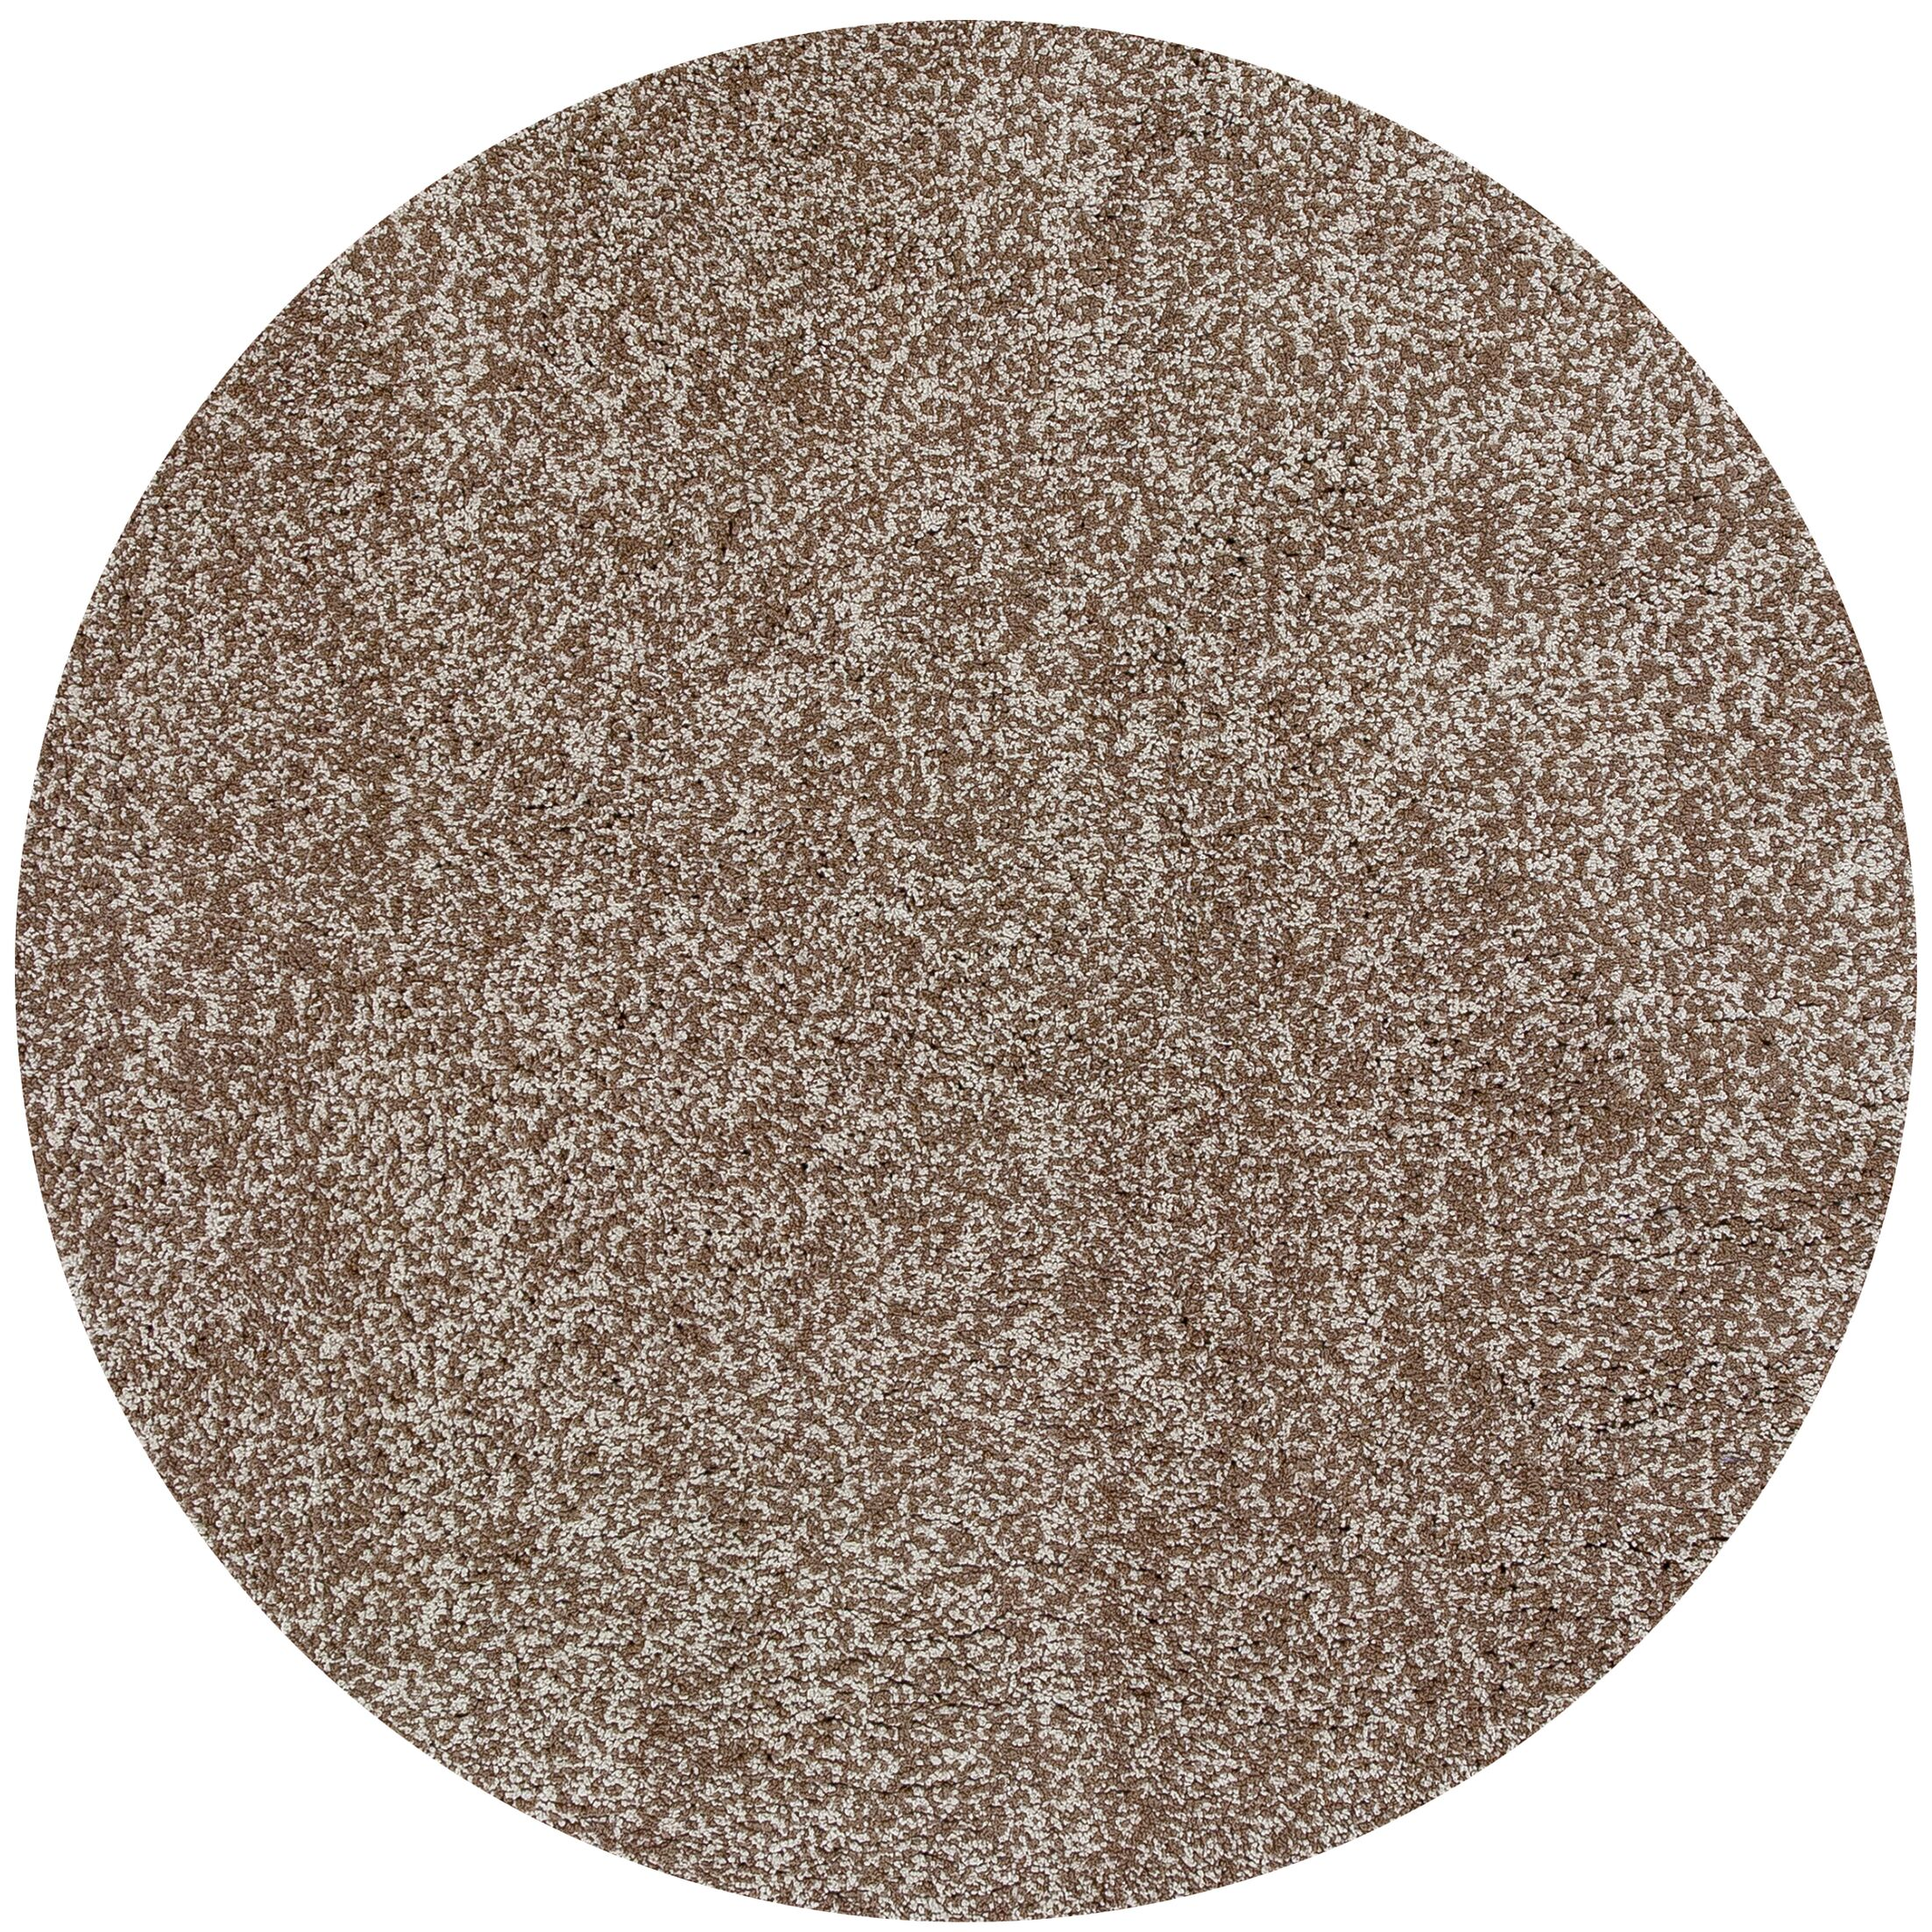 Bouvier Beige Heather Area Rug Rug Size: Rectangle 9' x 13'